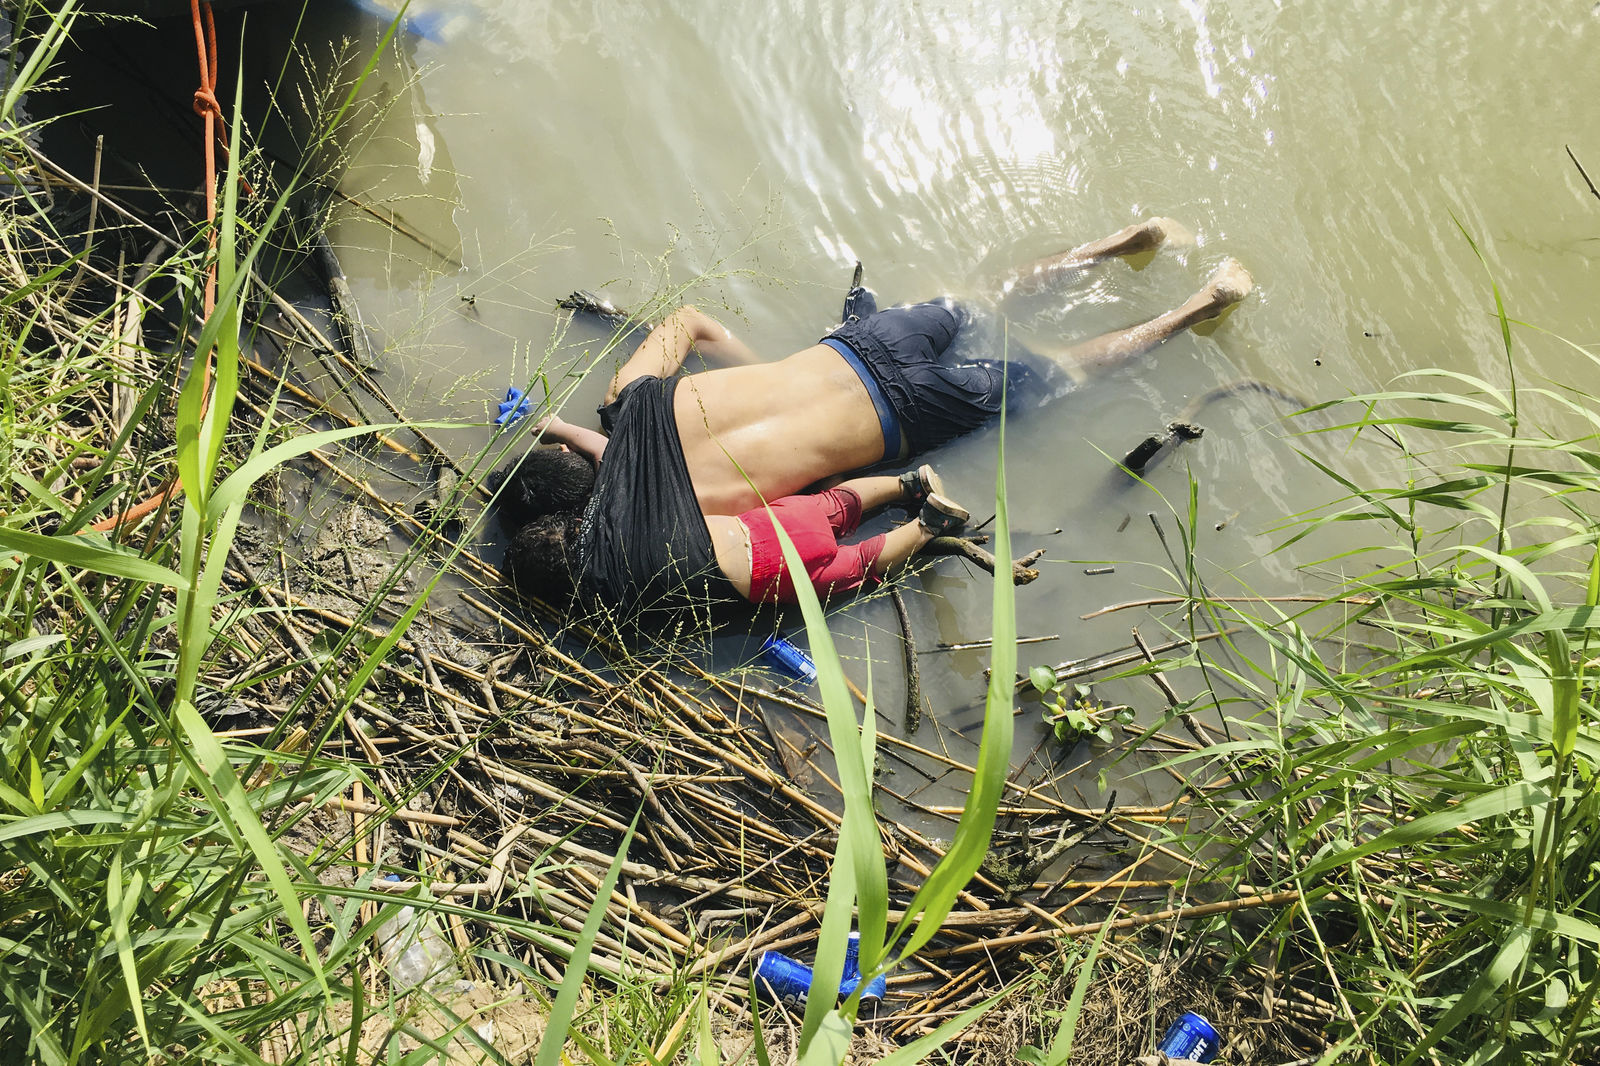 WARNING GRAPHIC CONTENT - The bodies of Salvadoran migrant Oscar Alberto Martínez Ramírez and his nearly 2-year-old daughter Valeria lie on the bank of the Rio Grande in Matamoros, Mexico, Monday, June 24, 2019, after they drowned trying to cross the river to Brownsville, Texas. Martinez' wife, Tania told Mexican authorities she watched her husband and child disappear in the strong current. (AP Photo/Julia Le Duc)